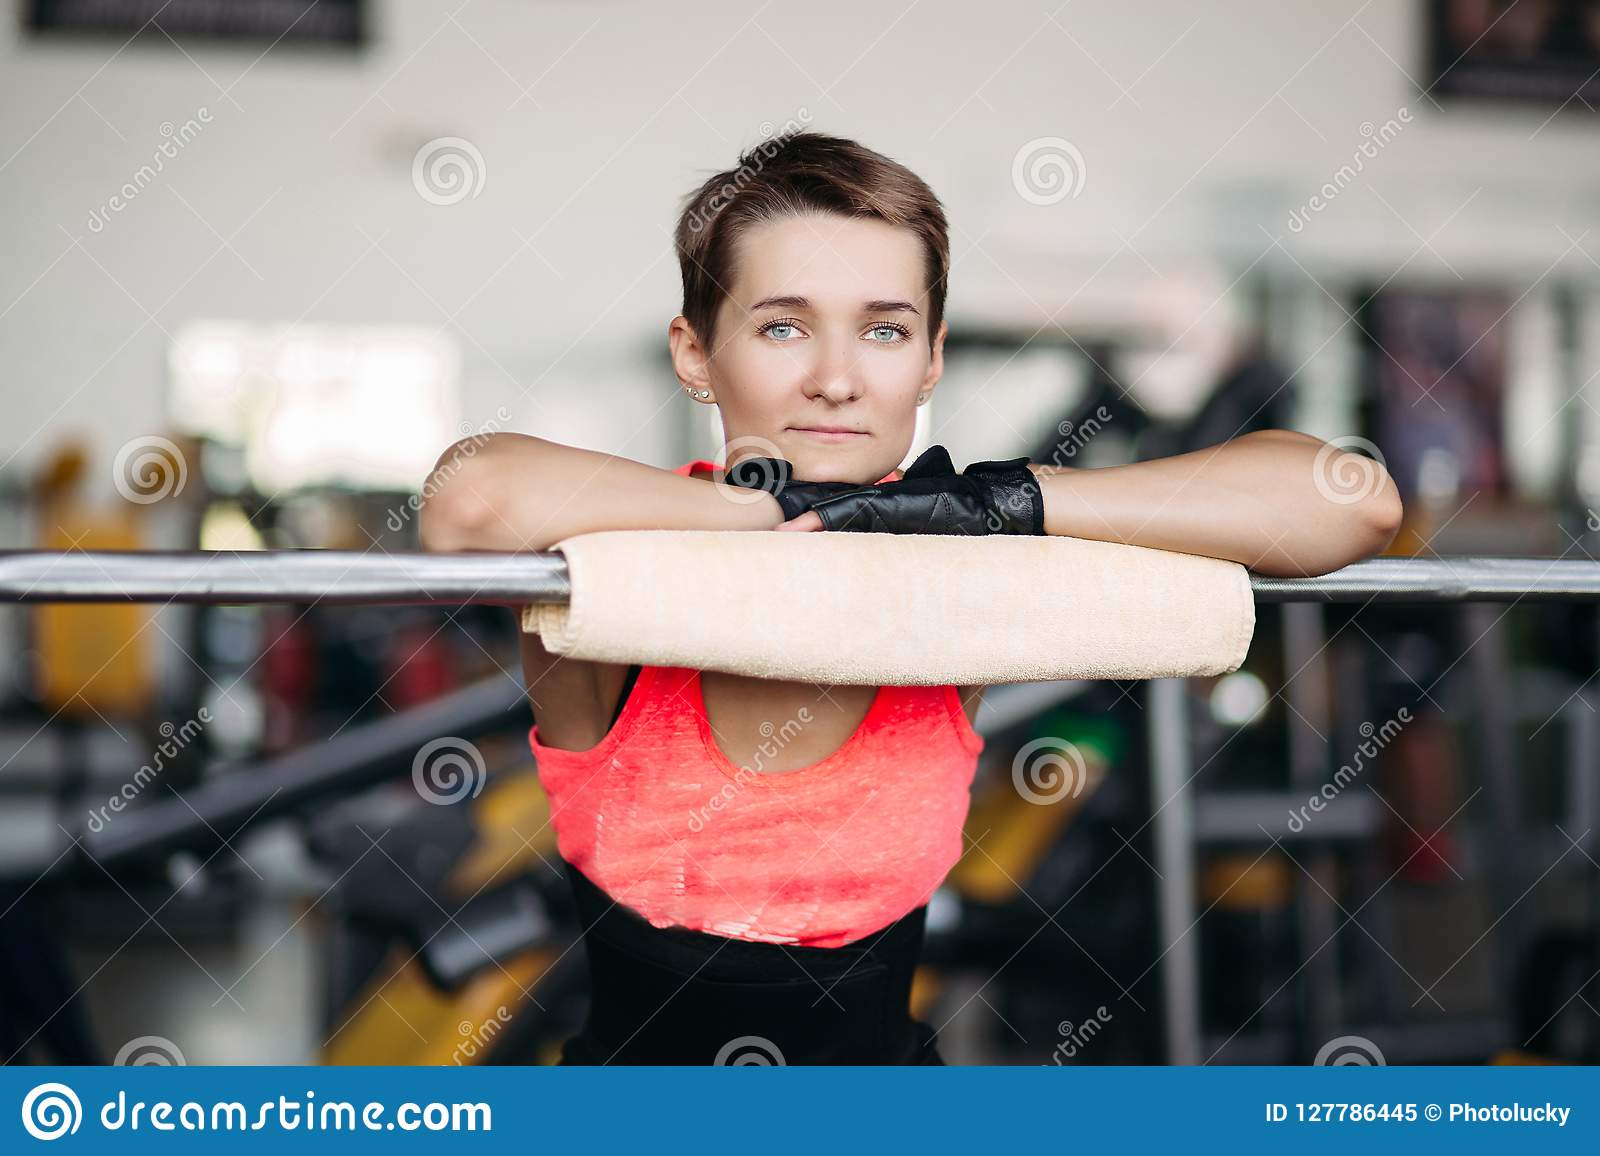 Woman With Short Hair In Pink Wear Resting In Gym After Workout With Barbell Stock Image Image Of Beautiful Health 127786445